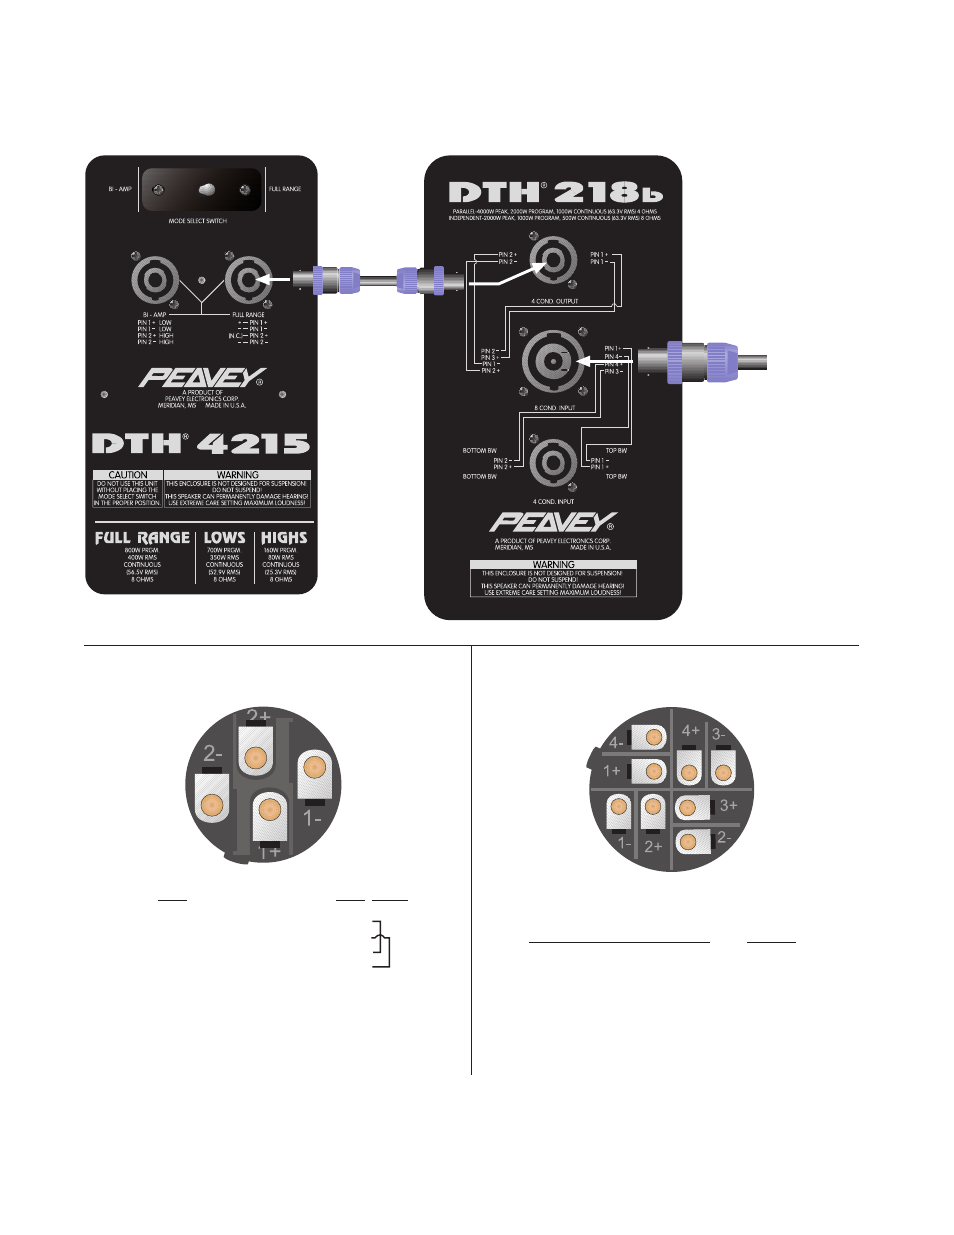 Wiring Diagram Pin Speakon Number Wire Scheme Peavey Dth 4215 Cable User Manual Page 9 16